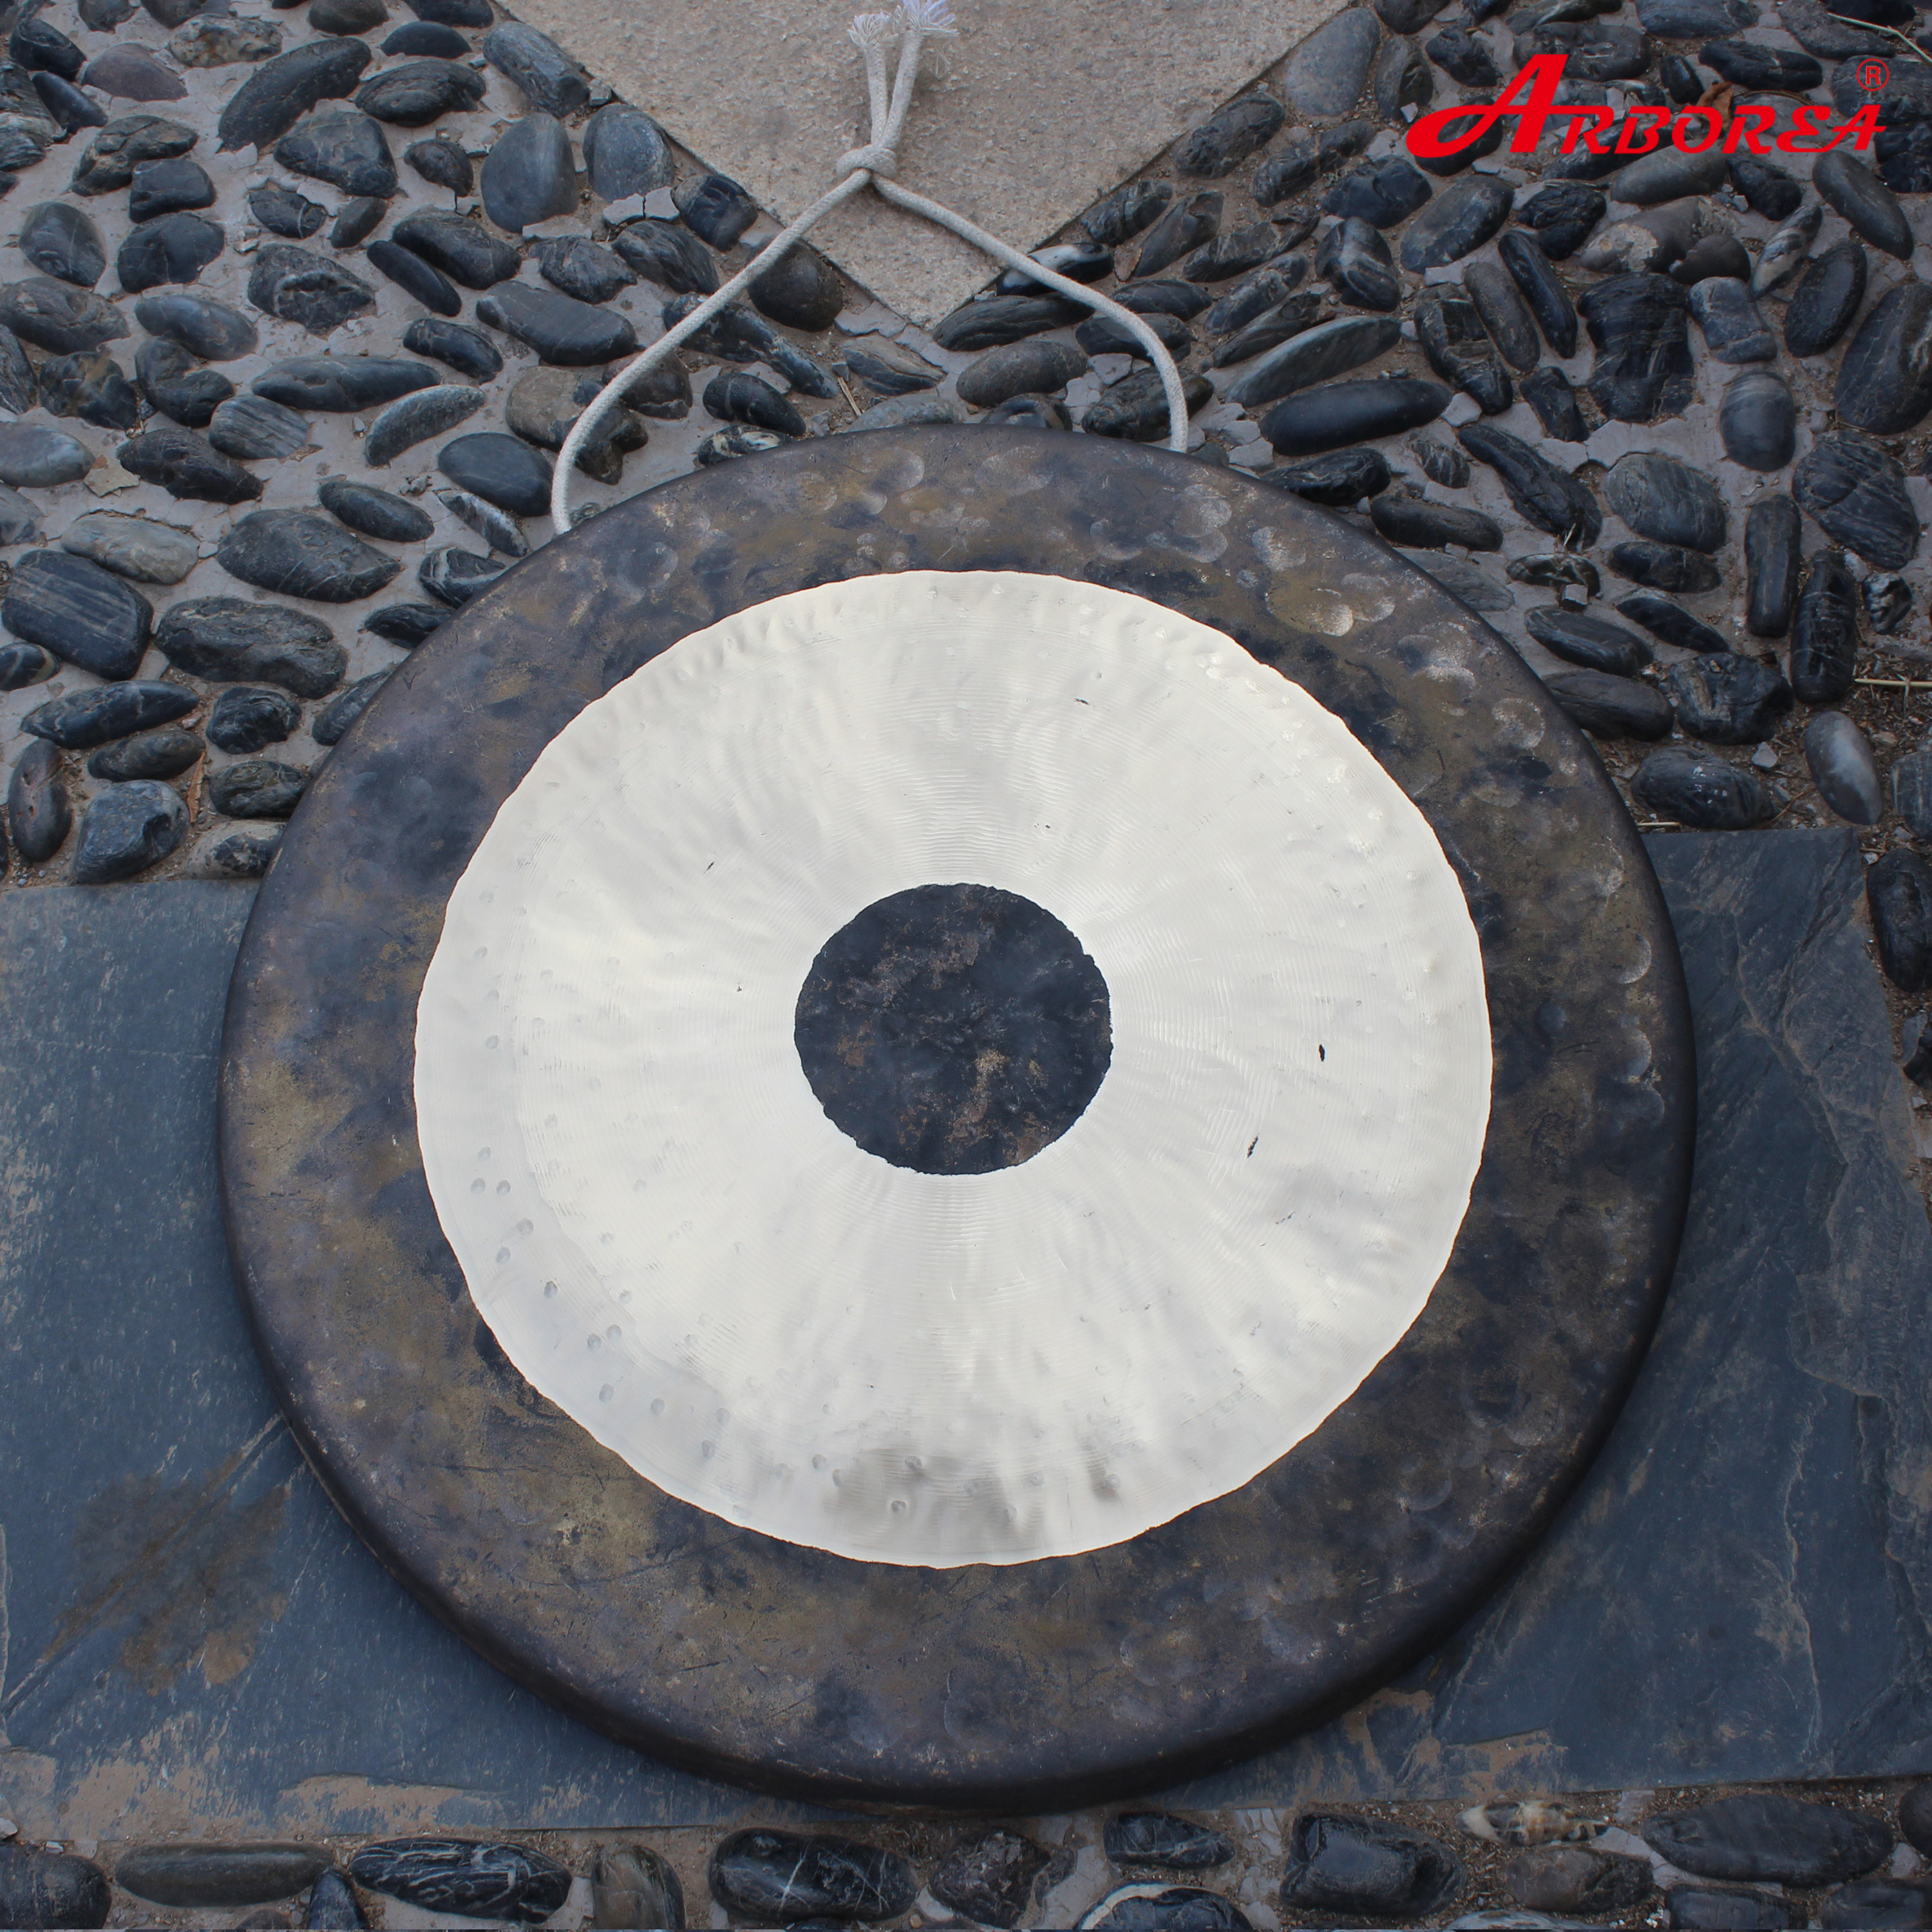 Percussion musical instruments traditional Chinese 20 Chau gongPercussion musical instruments traditional Chinese 20 Chau gong